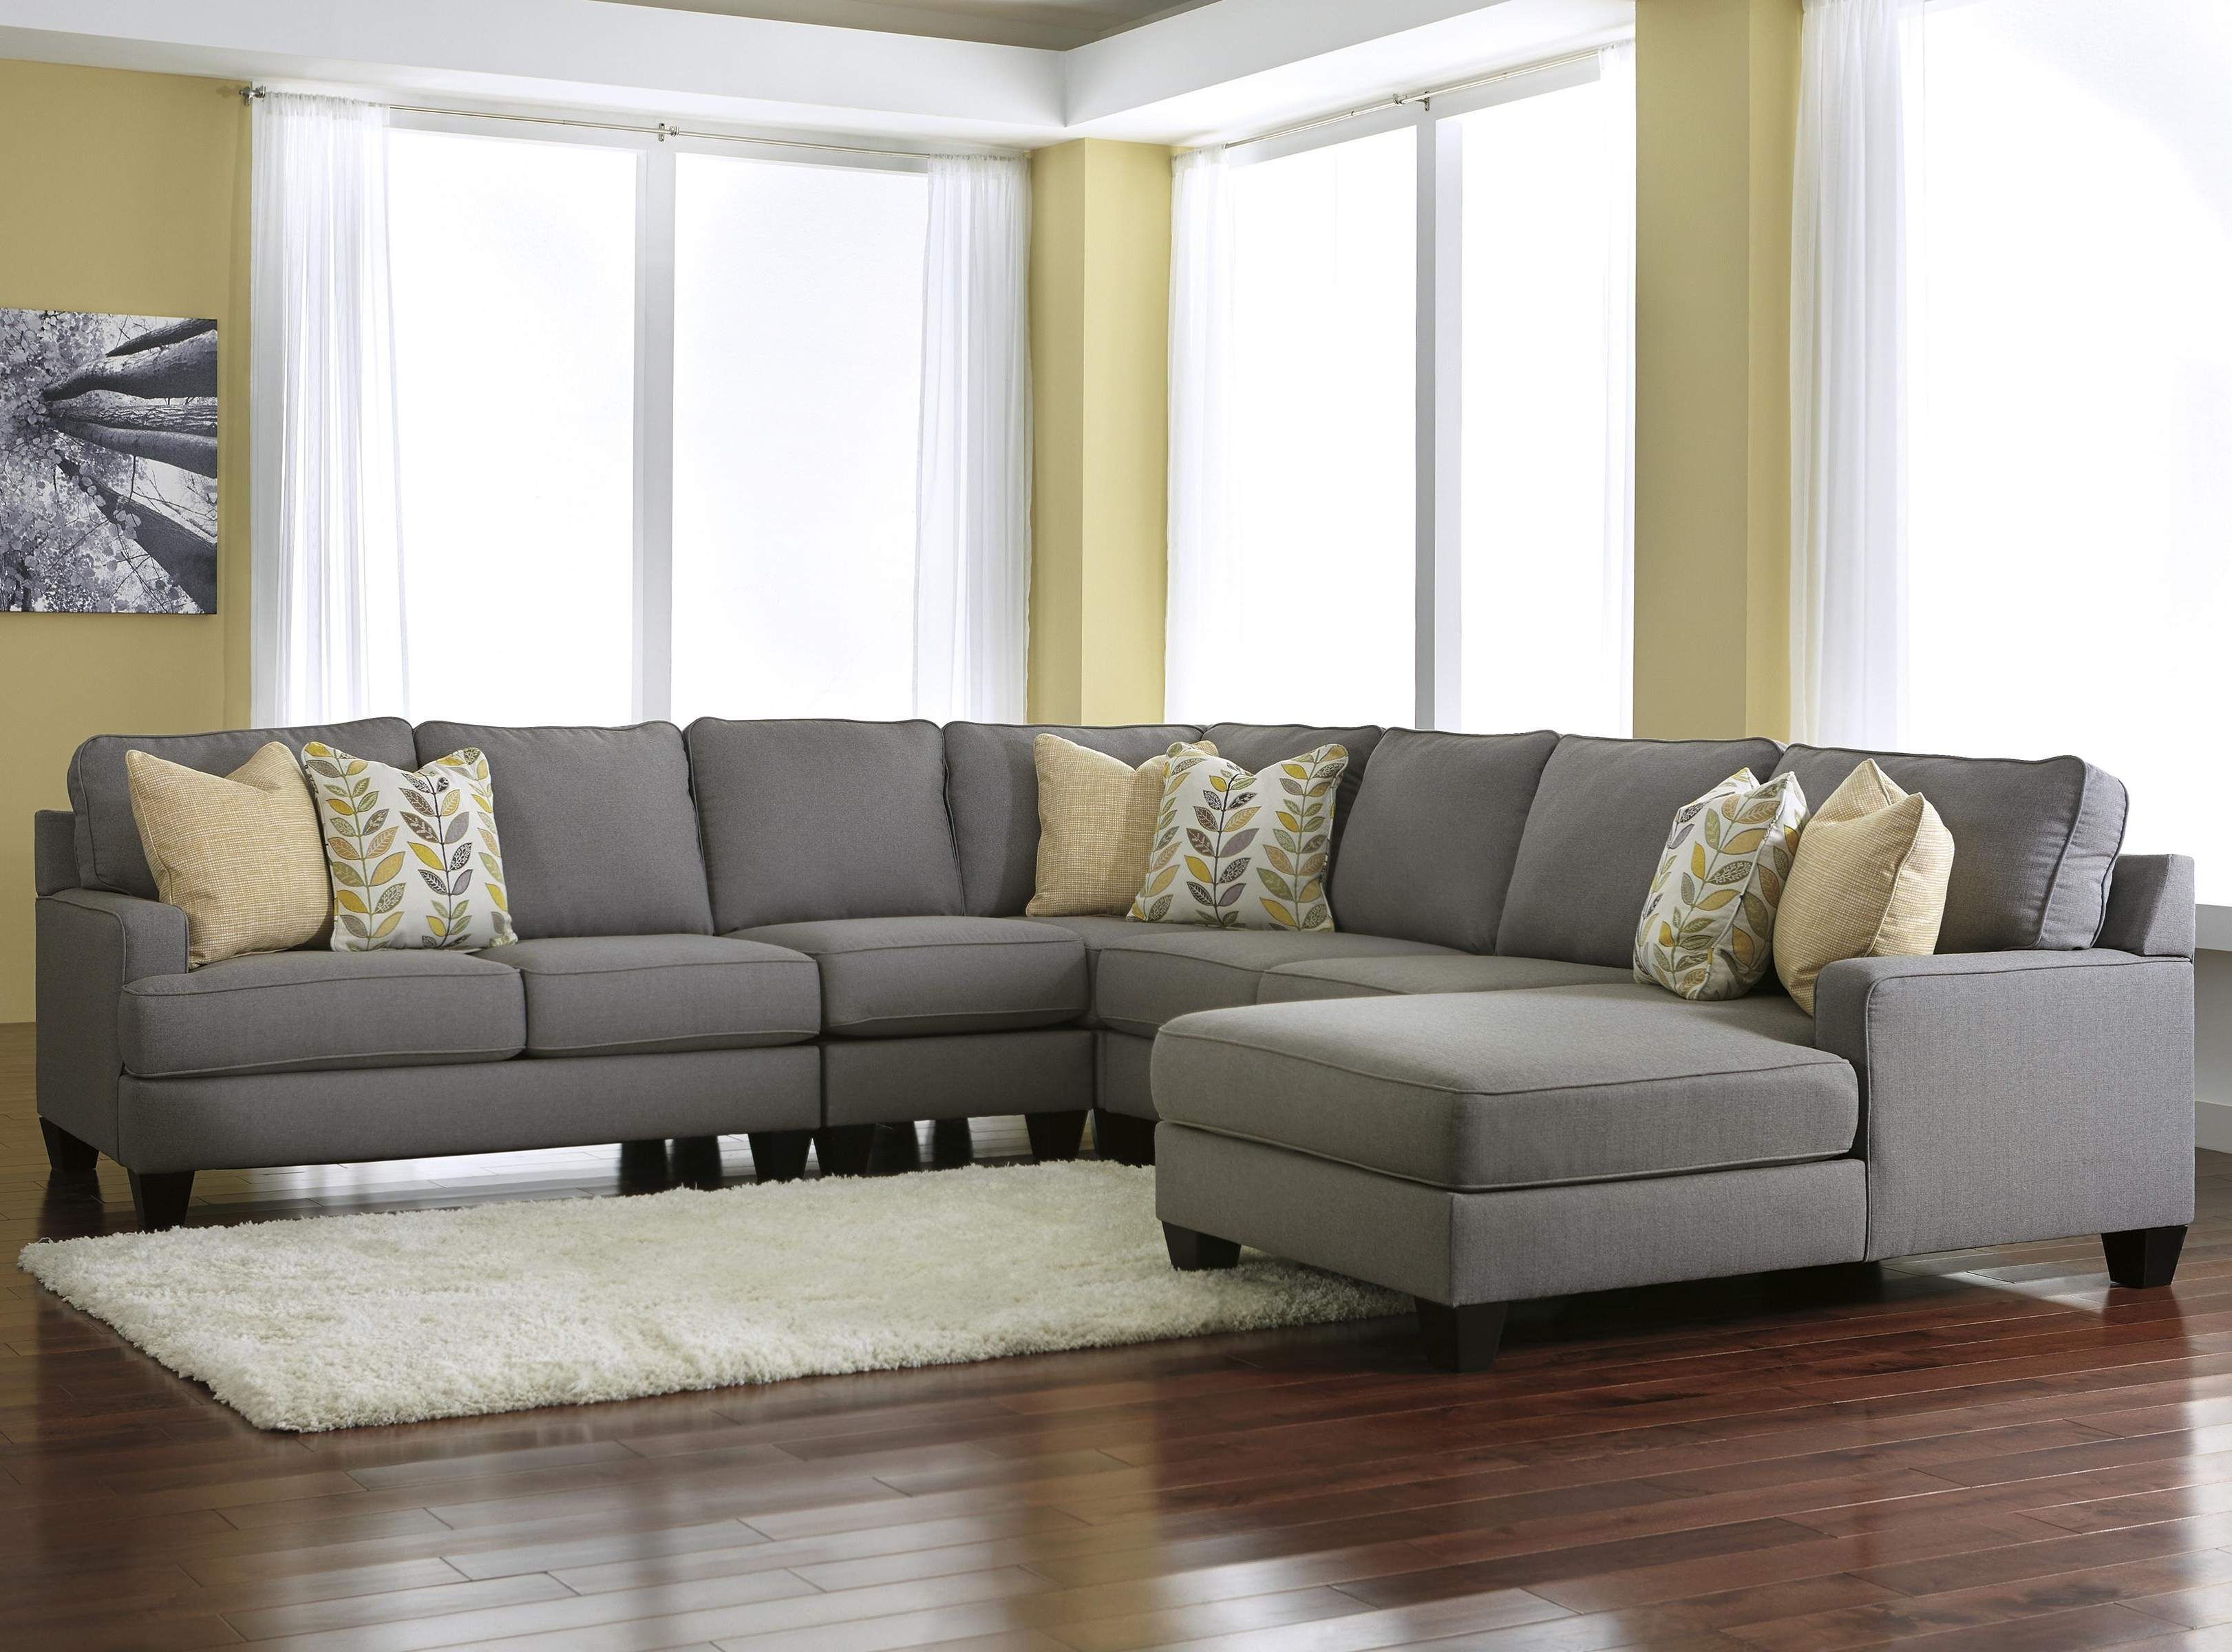 Signature Designashley Chamberly – Alloy Modern 5 Piece Throughout Most Popular Clarksville Tn Sectional Sofas (View 11 of 15)